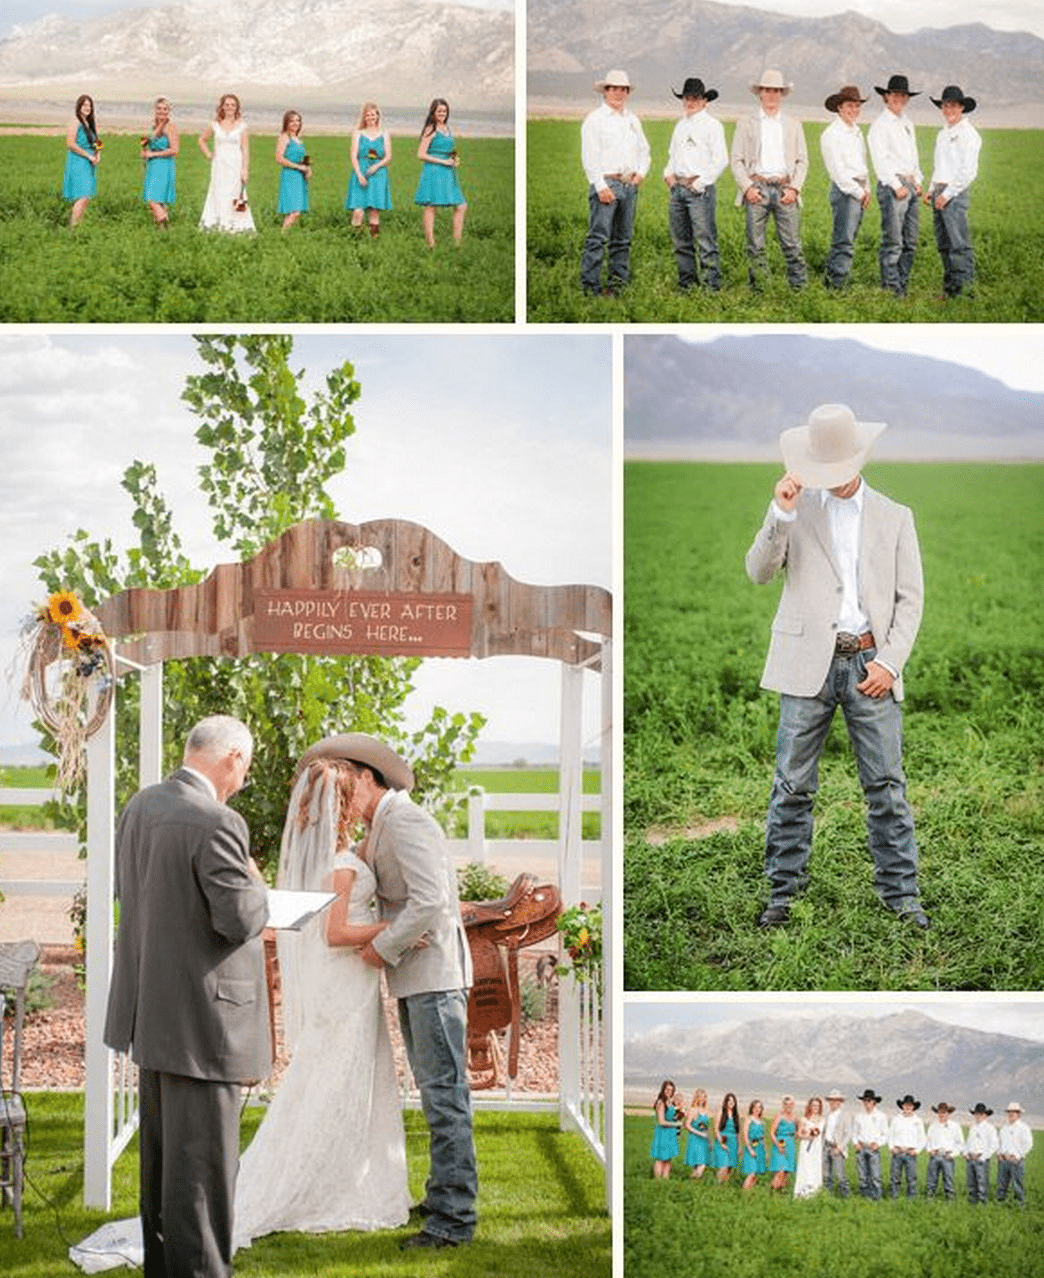 Saddle Up With Our Favorite Cowboy Western Wedding Ideas